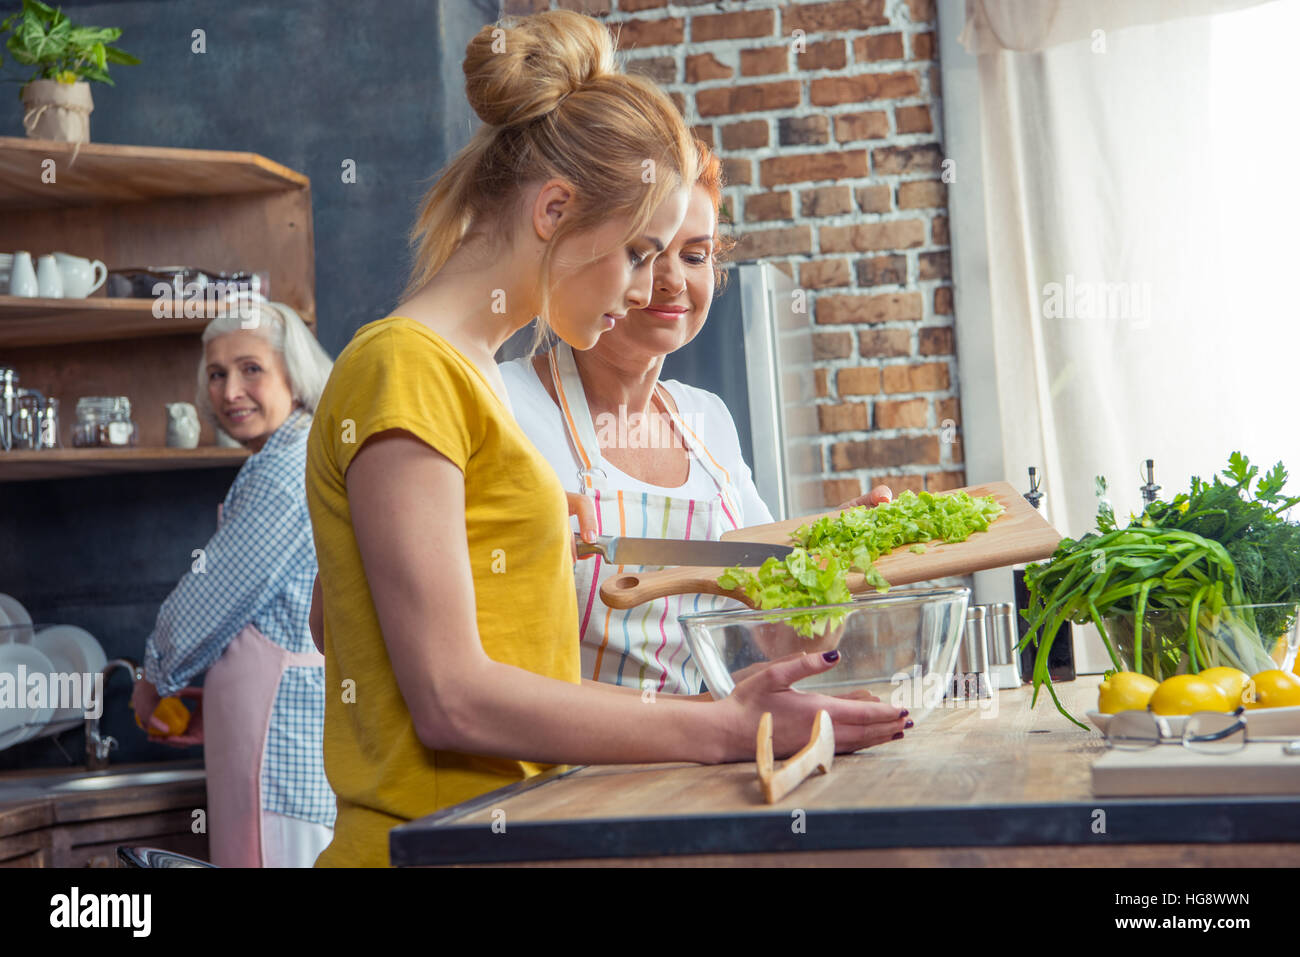 Happy family cooking together vegetable salad in kitchen - Stock Image